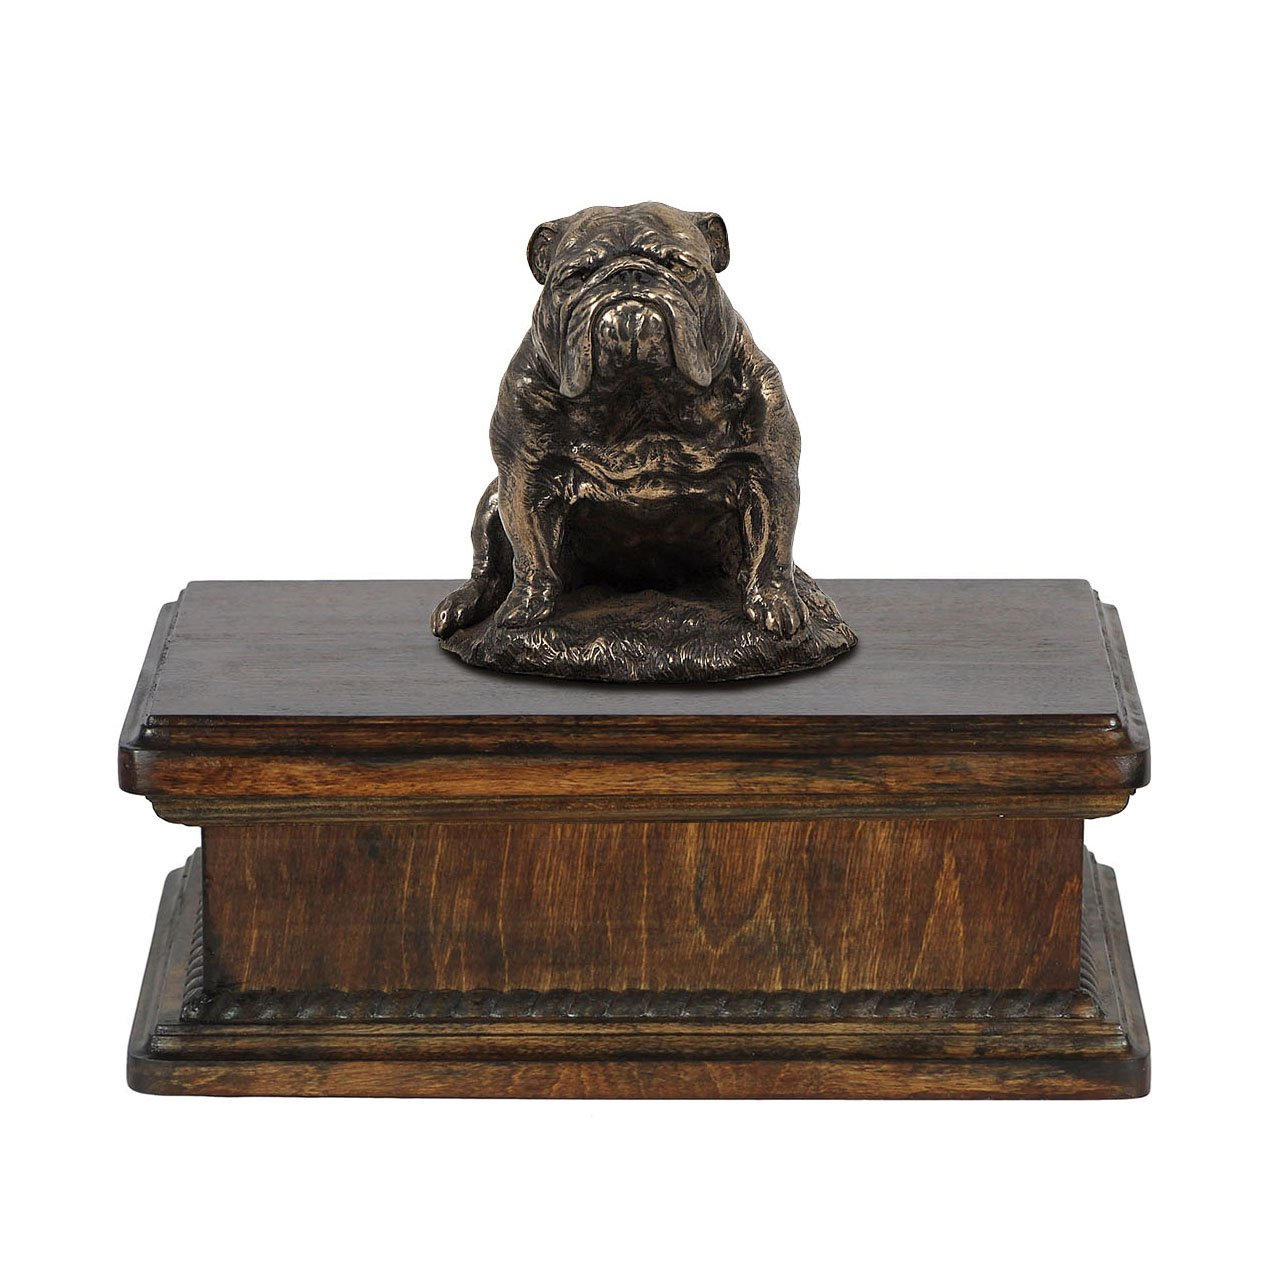 Bulldog (sitting), memorial, urn for dog's ashes, with dog statue, exclusive, ArtDog